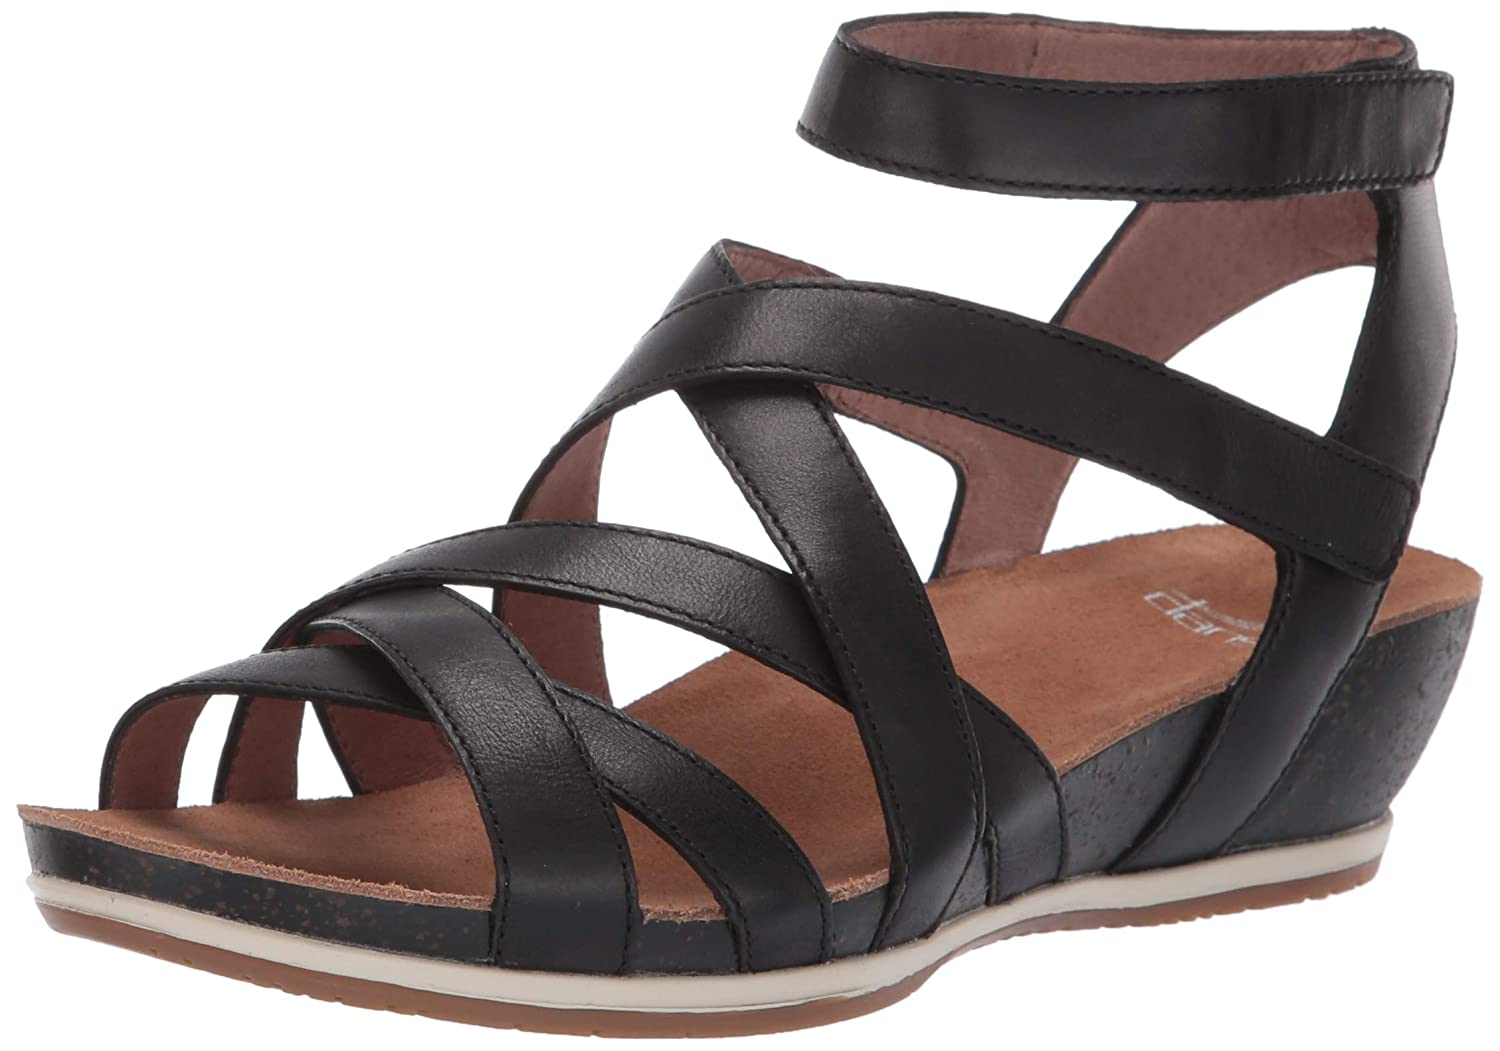 166af7acdad3 Amazon.com  Dansko Women s Veruca Sandal  Shoes